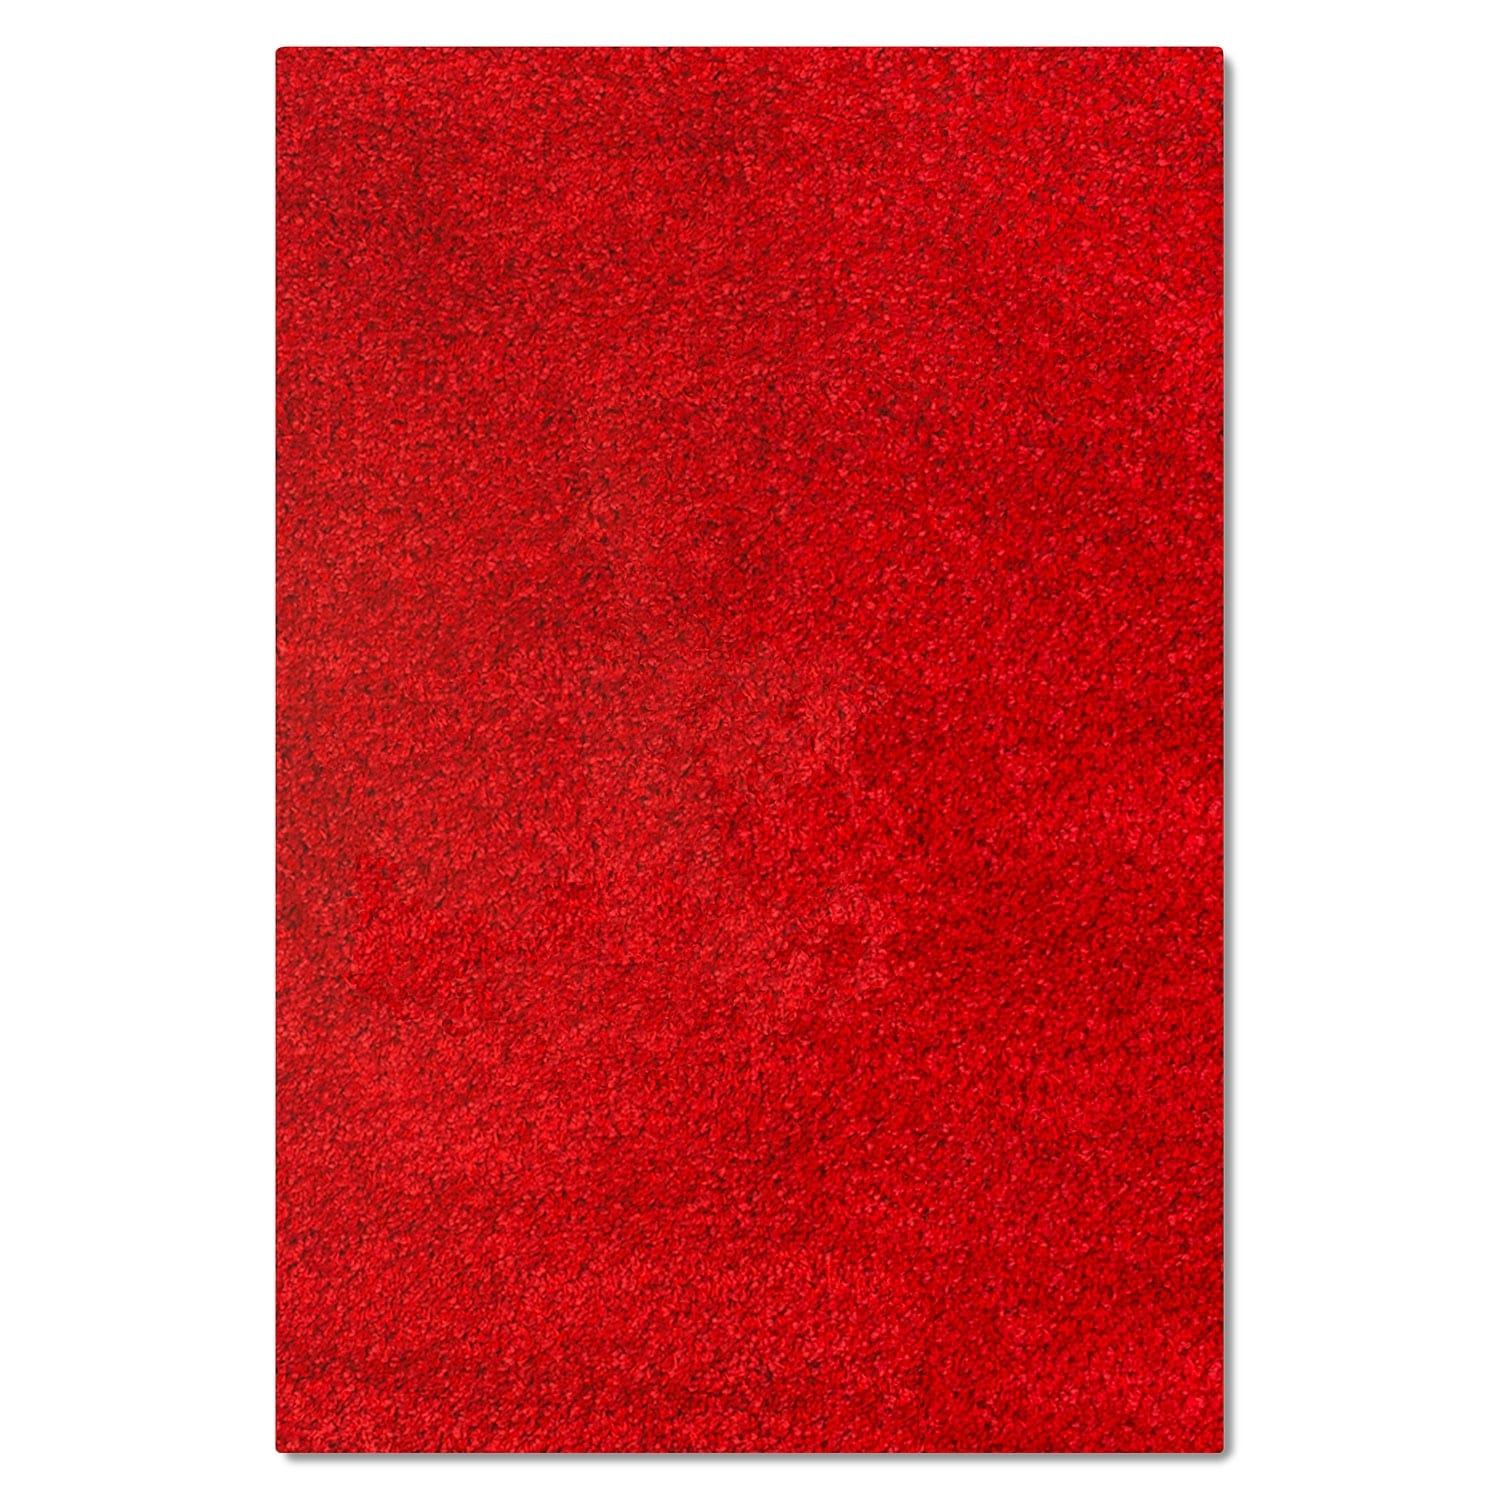 Comfort Red Shag Area Rug (5' x 8')